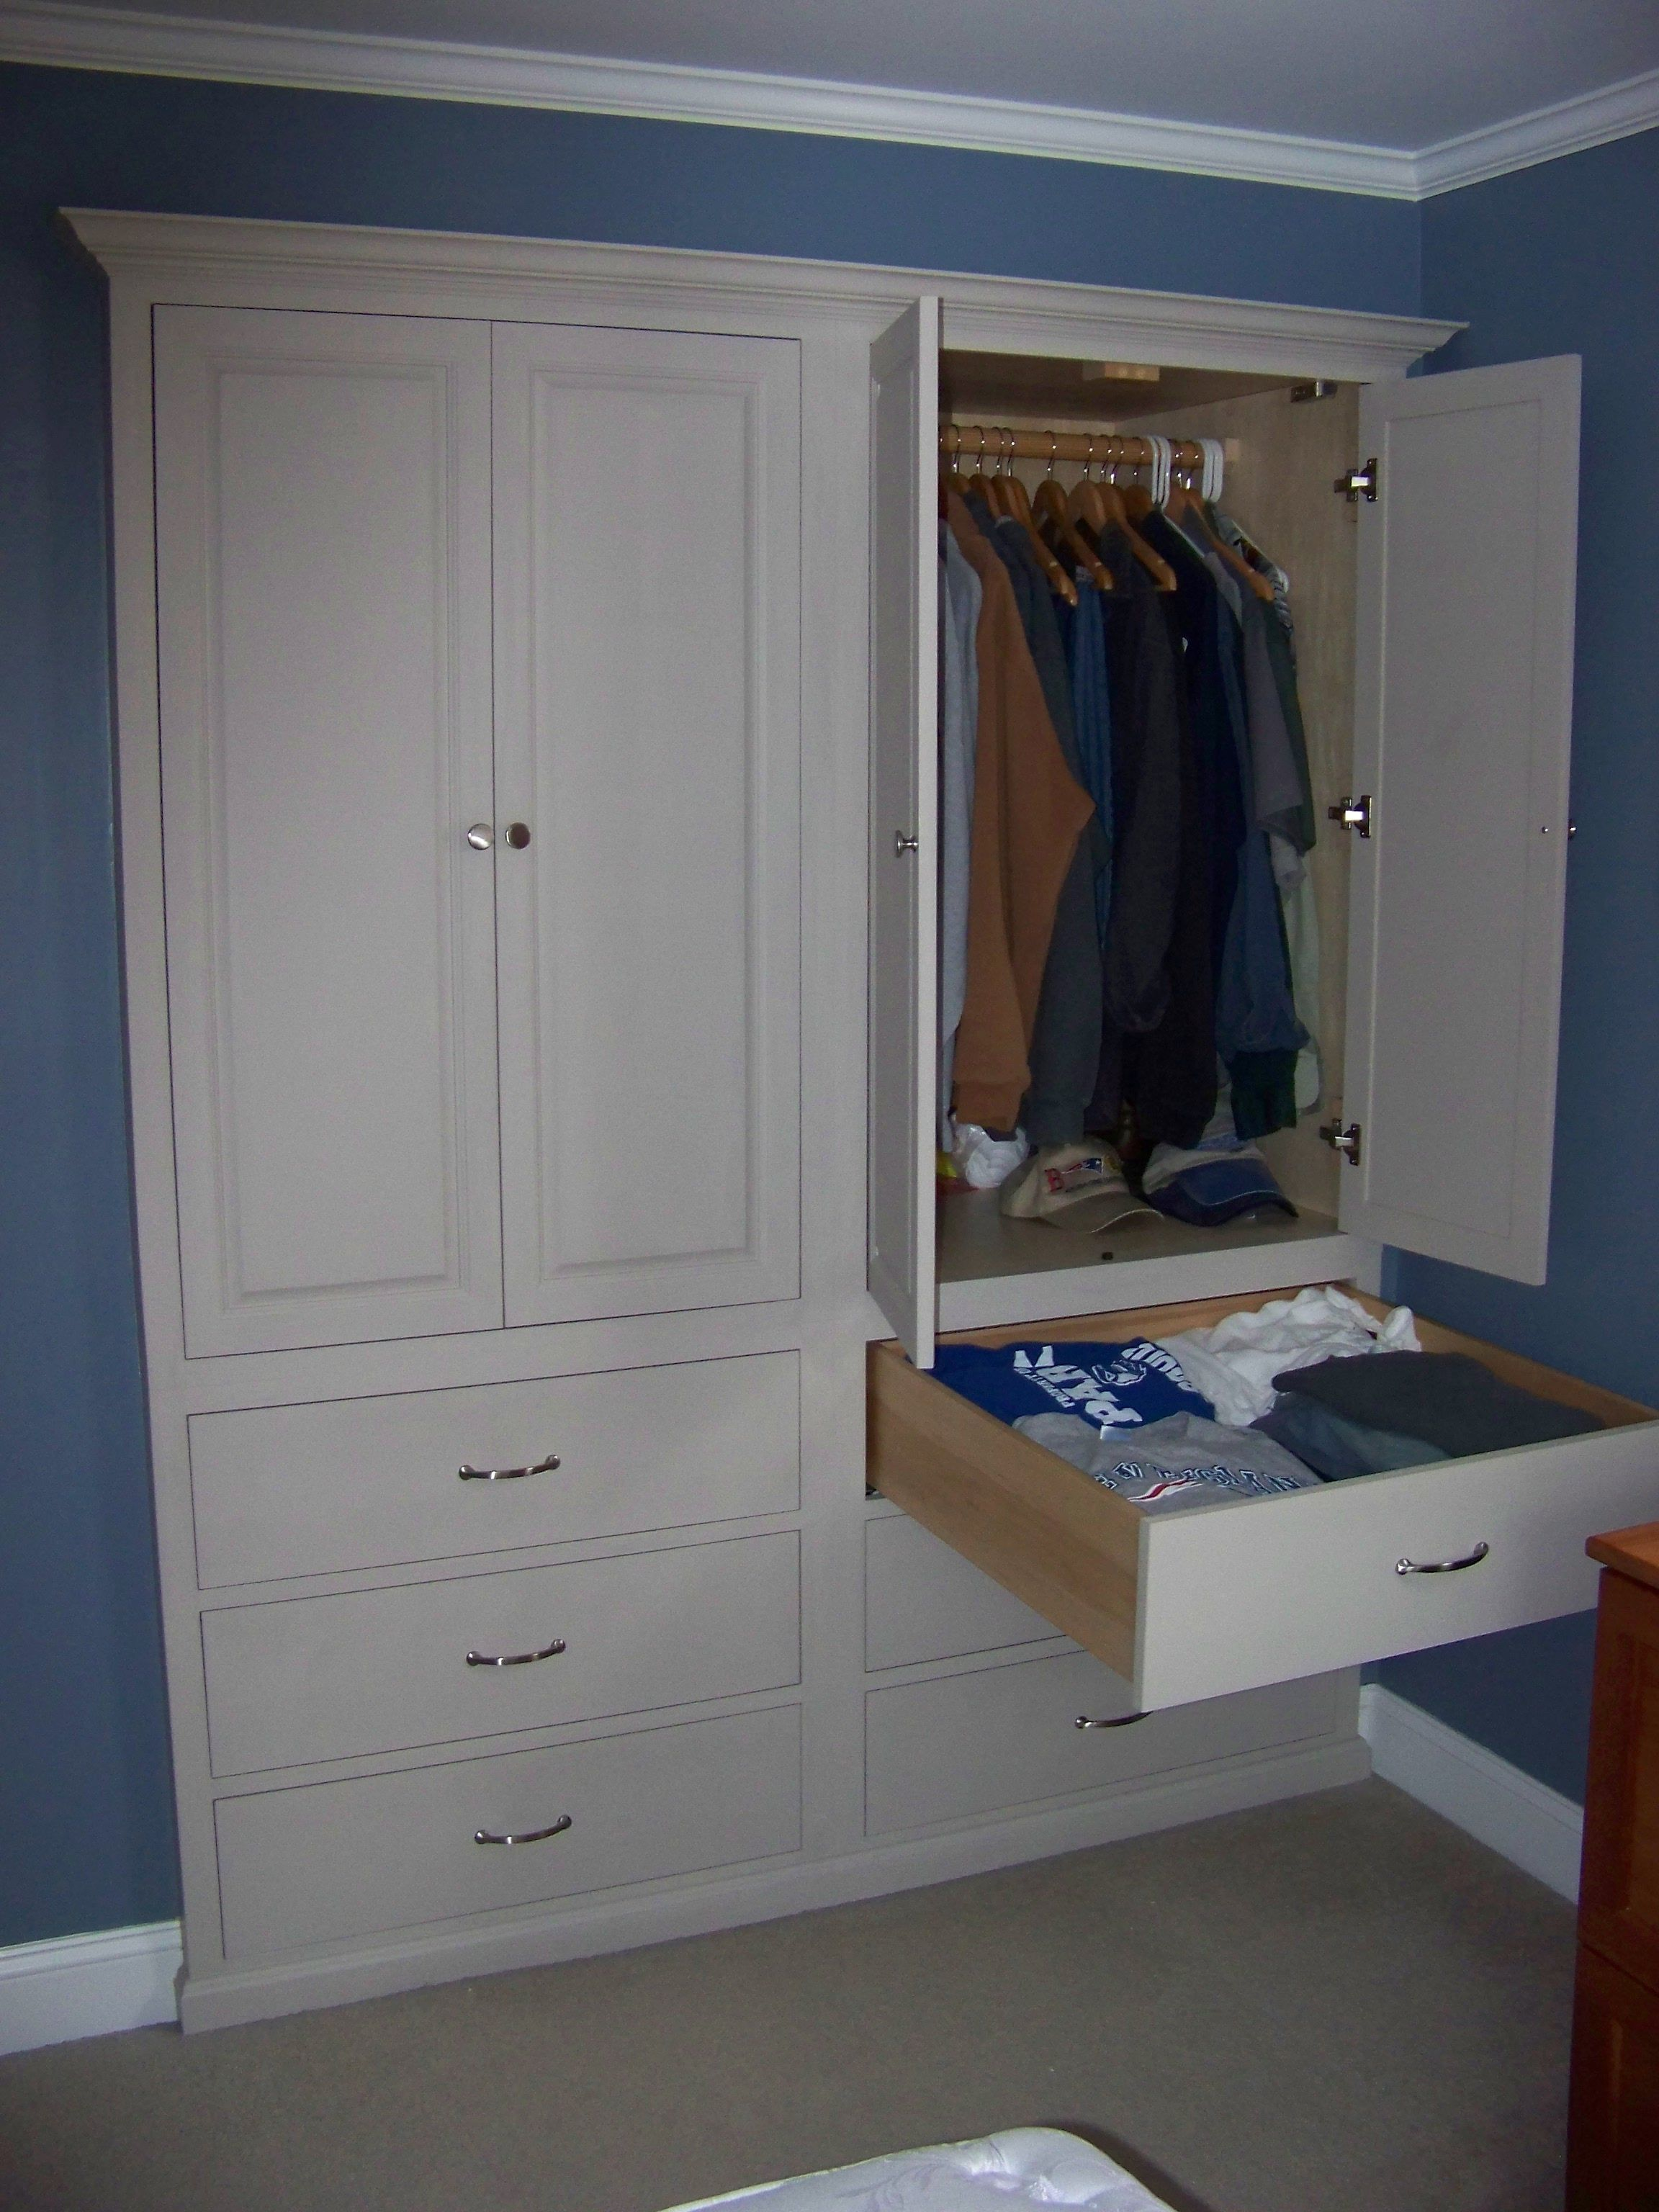 This Cabinet Was Built And Installed In A Standard Double Sliding Door Closet To Maximize